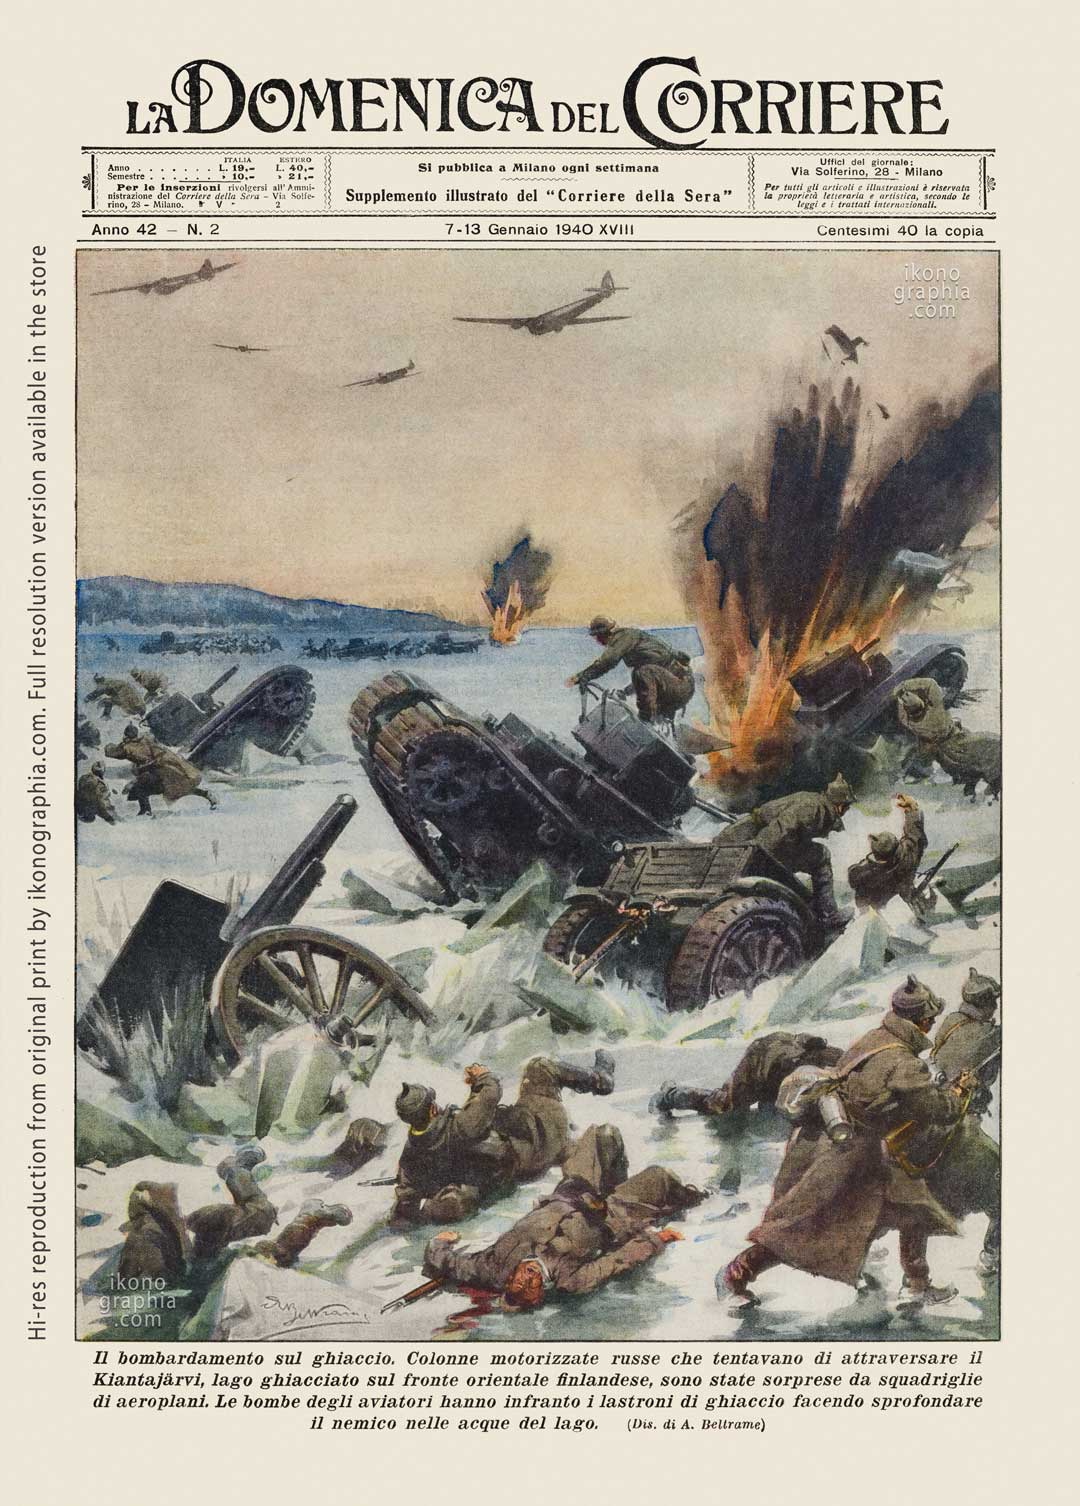 """A plate by Achille Beltrame for """"La Domenica del Corriere"""". Bombing the Reds on the ice."""